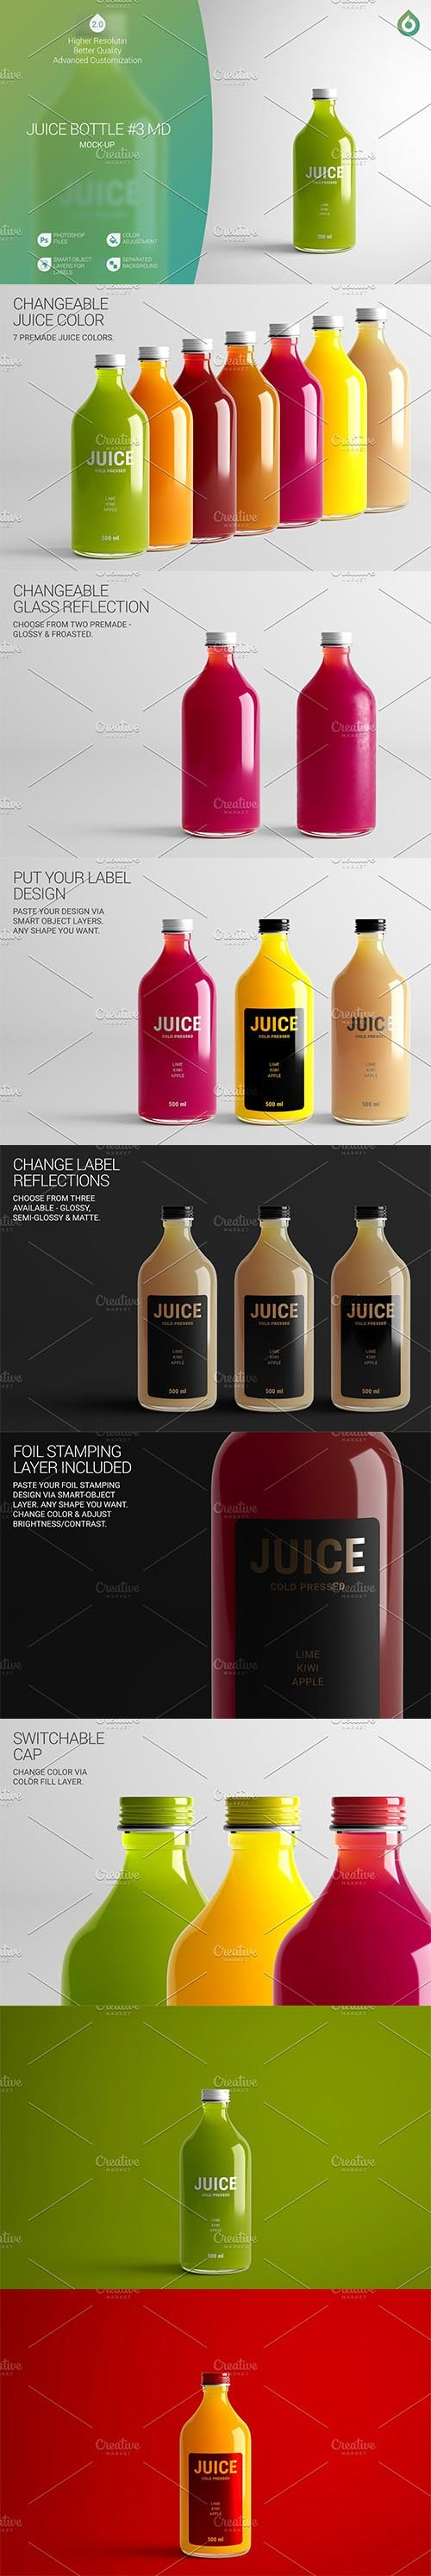 CreativeMarket - Juice Bottle MD Mock-Up #3 [V2.0] 4169520